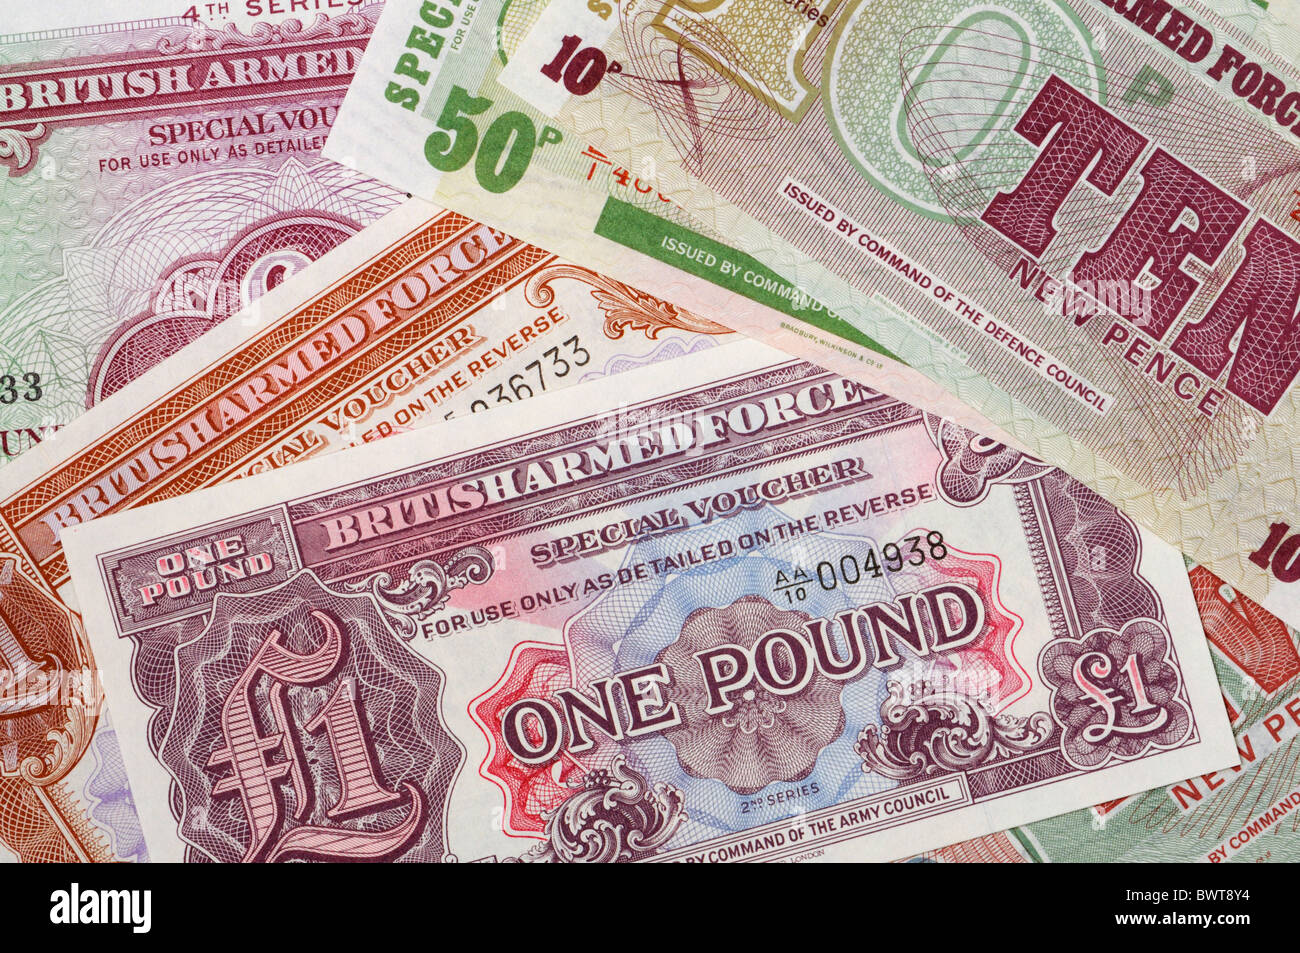 British Armed Forces special vouchers. - Stock Image